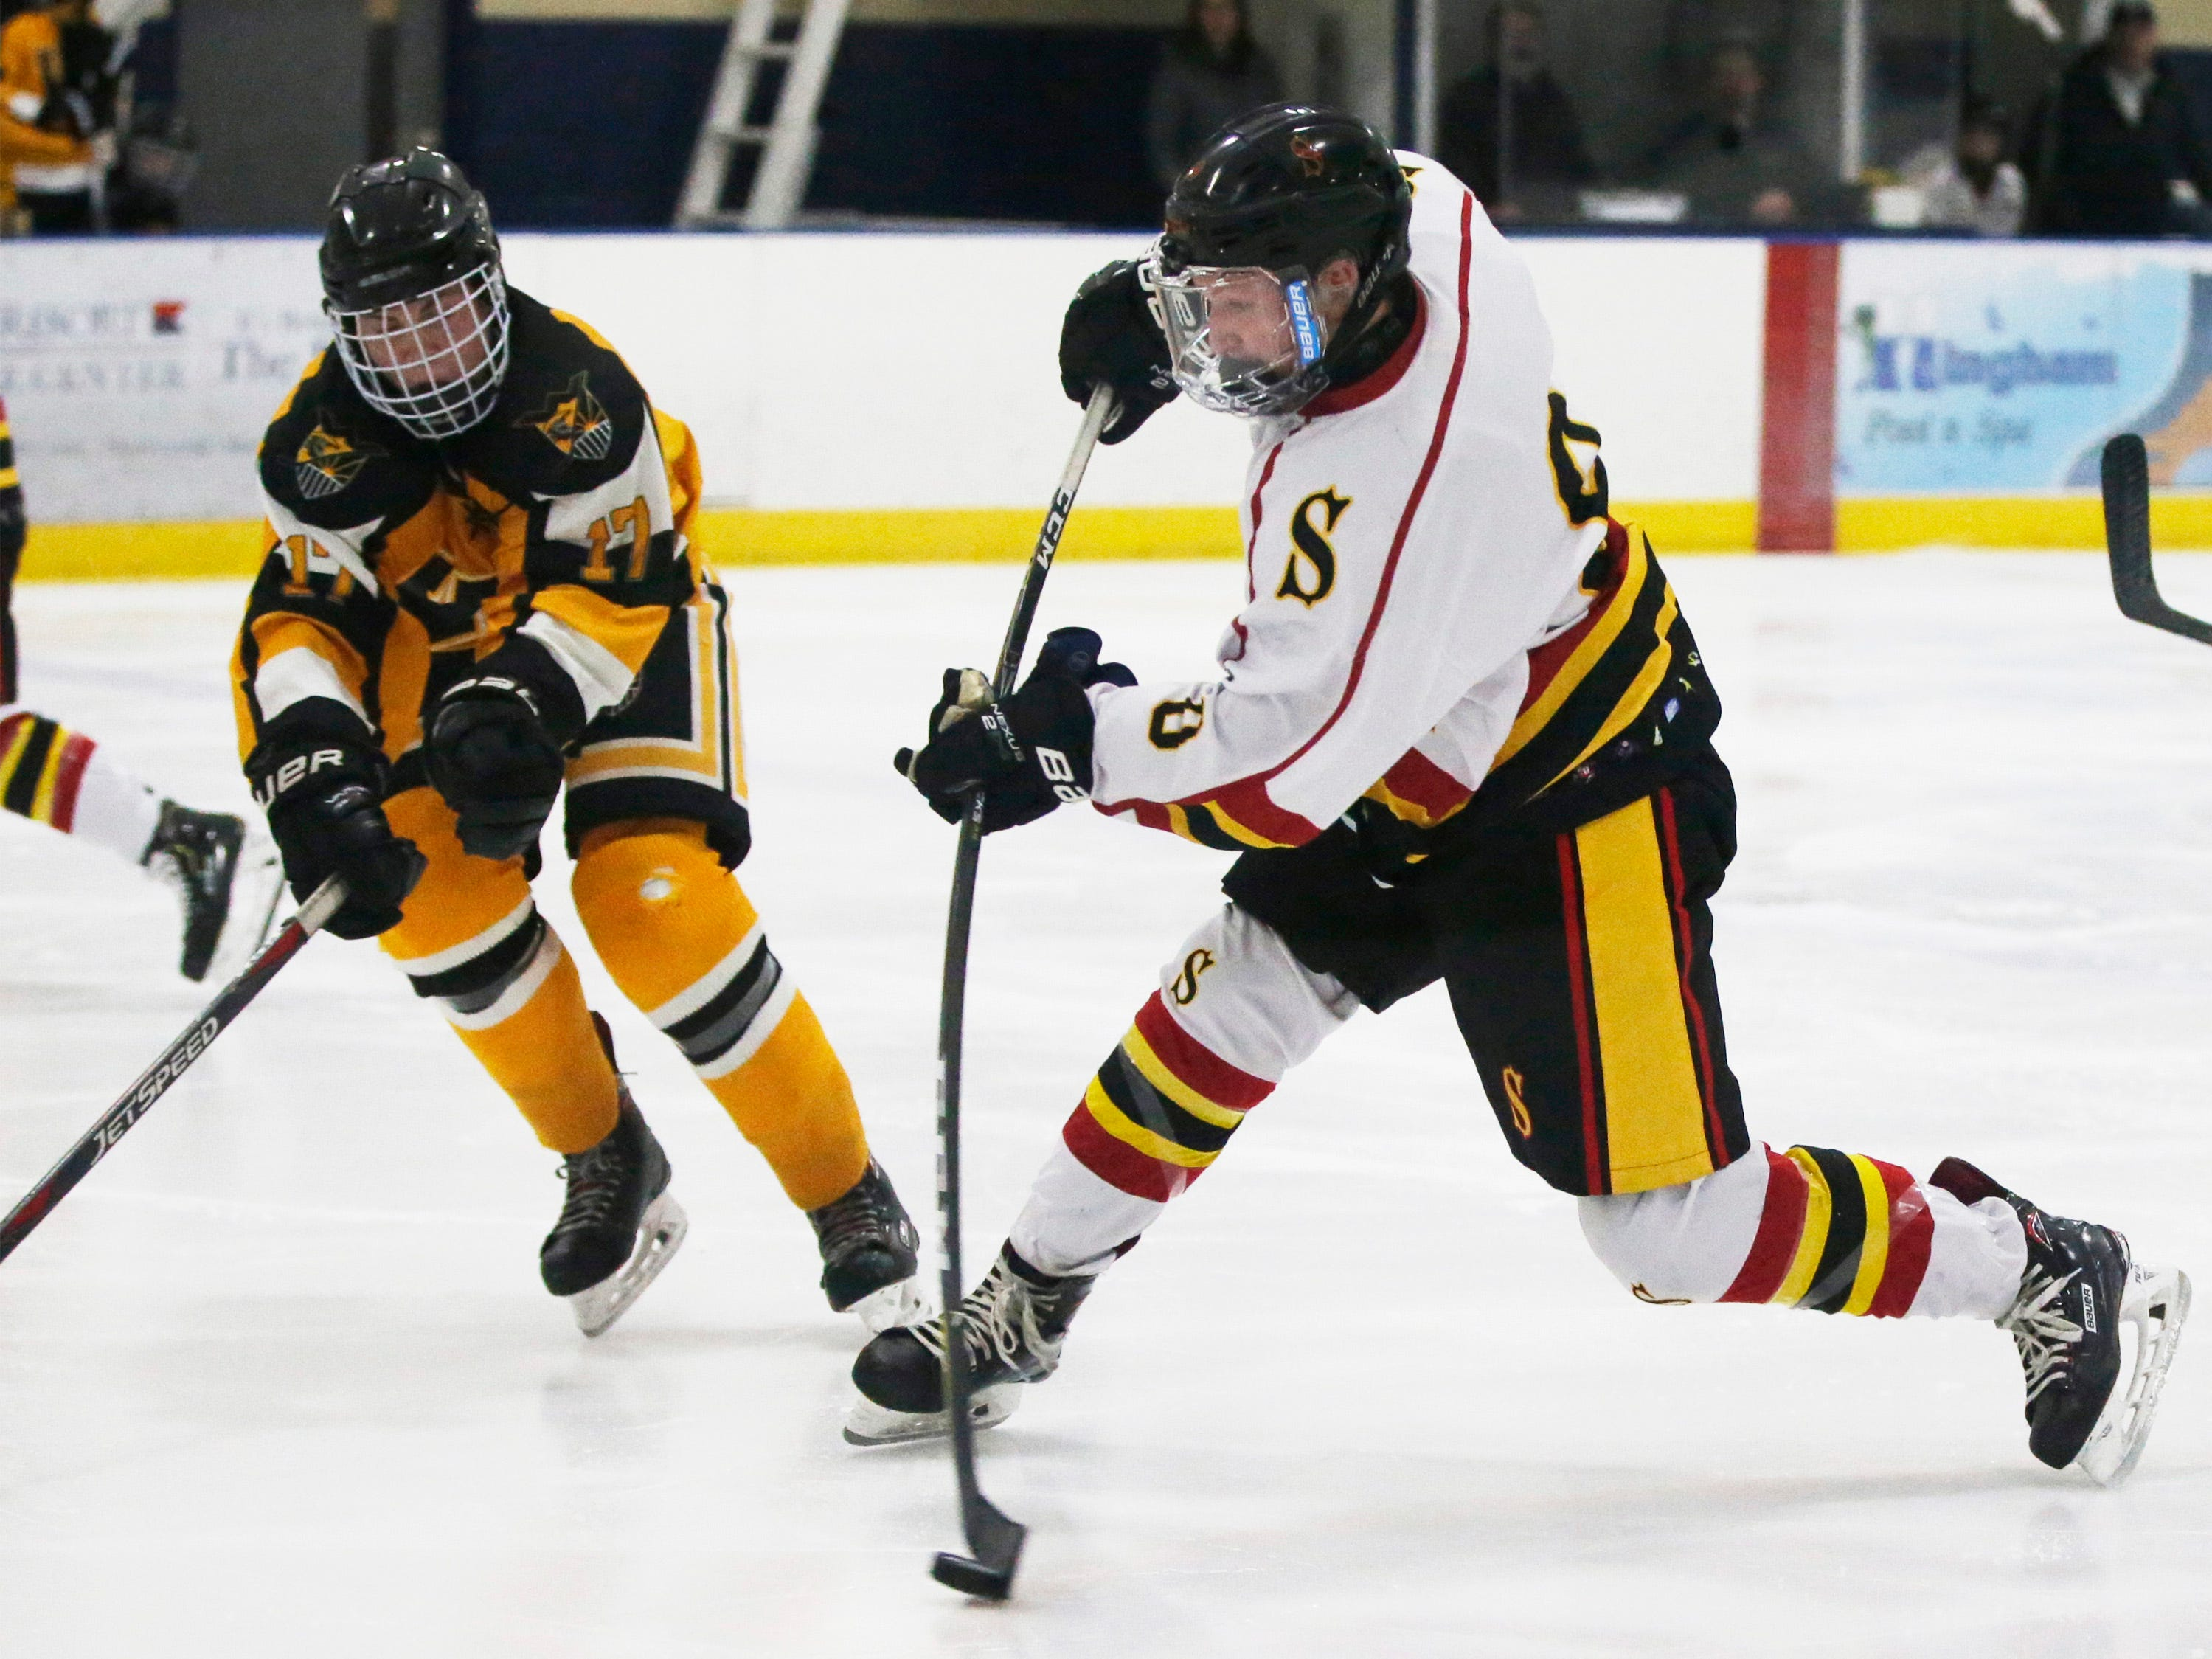 Sheboygan Red Raiders' Aaron Korpi (8, right) aims the puck against Waupun, Wednesday, February 13, 2019, in Sheboygan, Wis. The shot went into the goal.